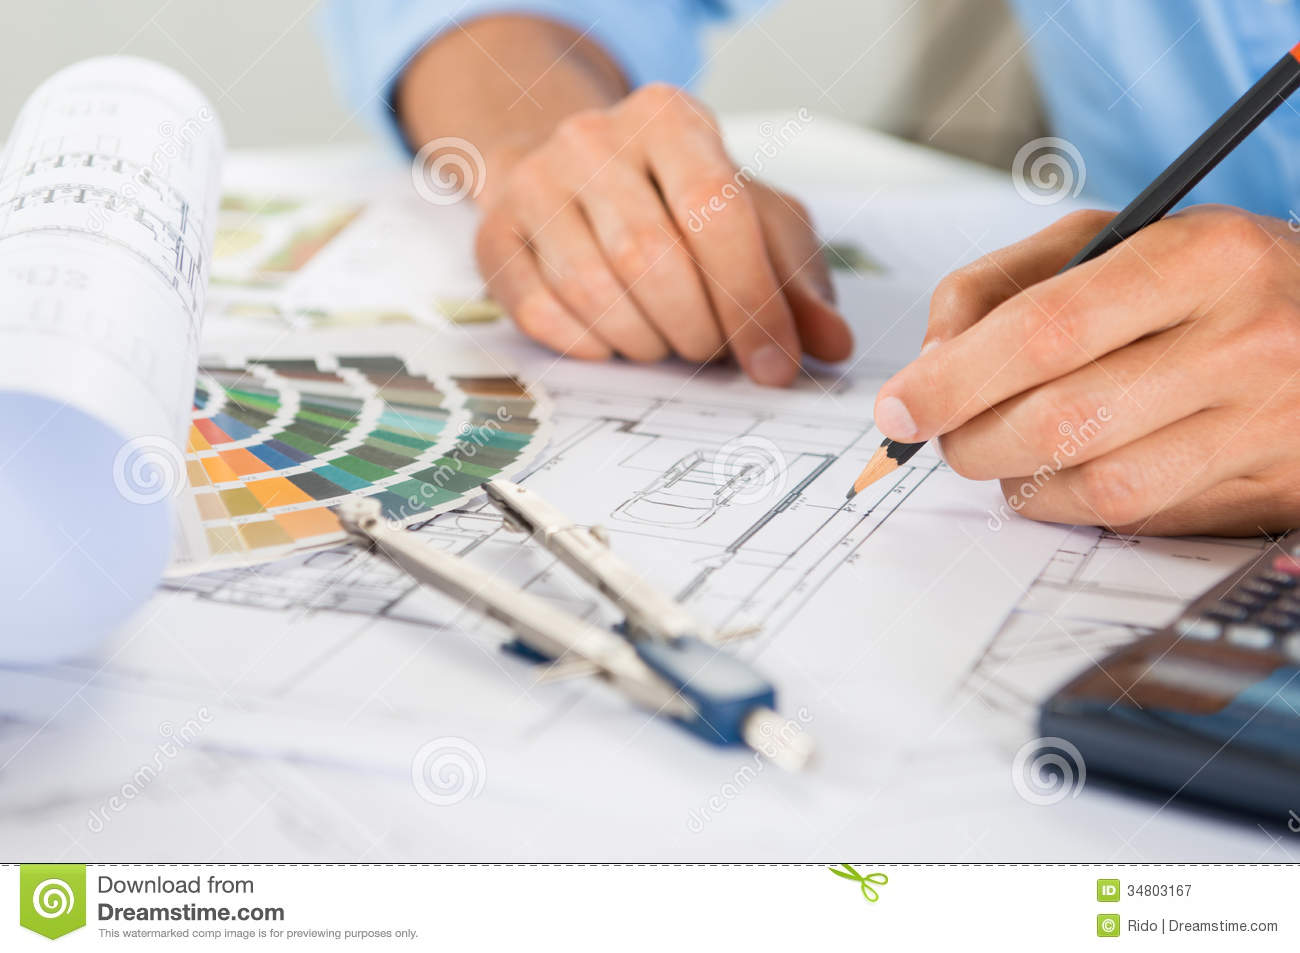 Draftsman drawing blueprints royalty free stock for Blueprint estimator